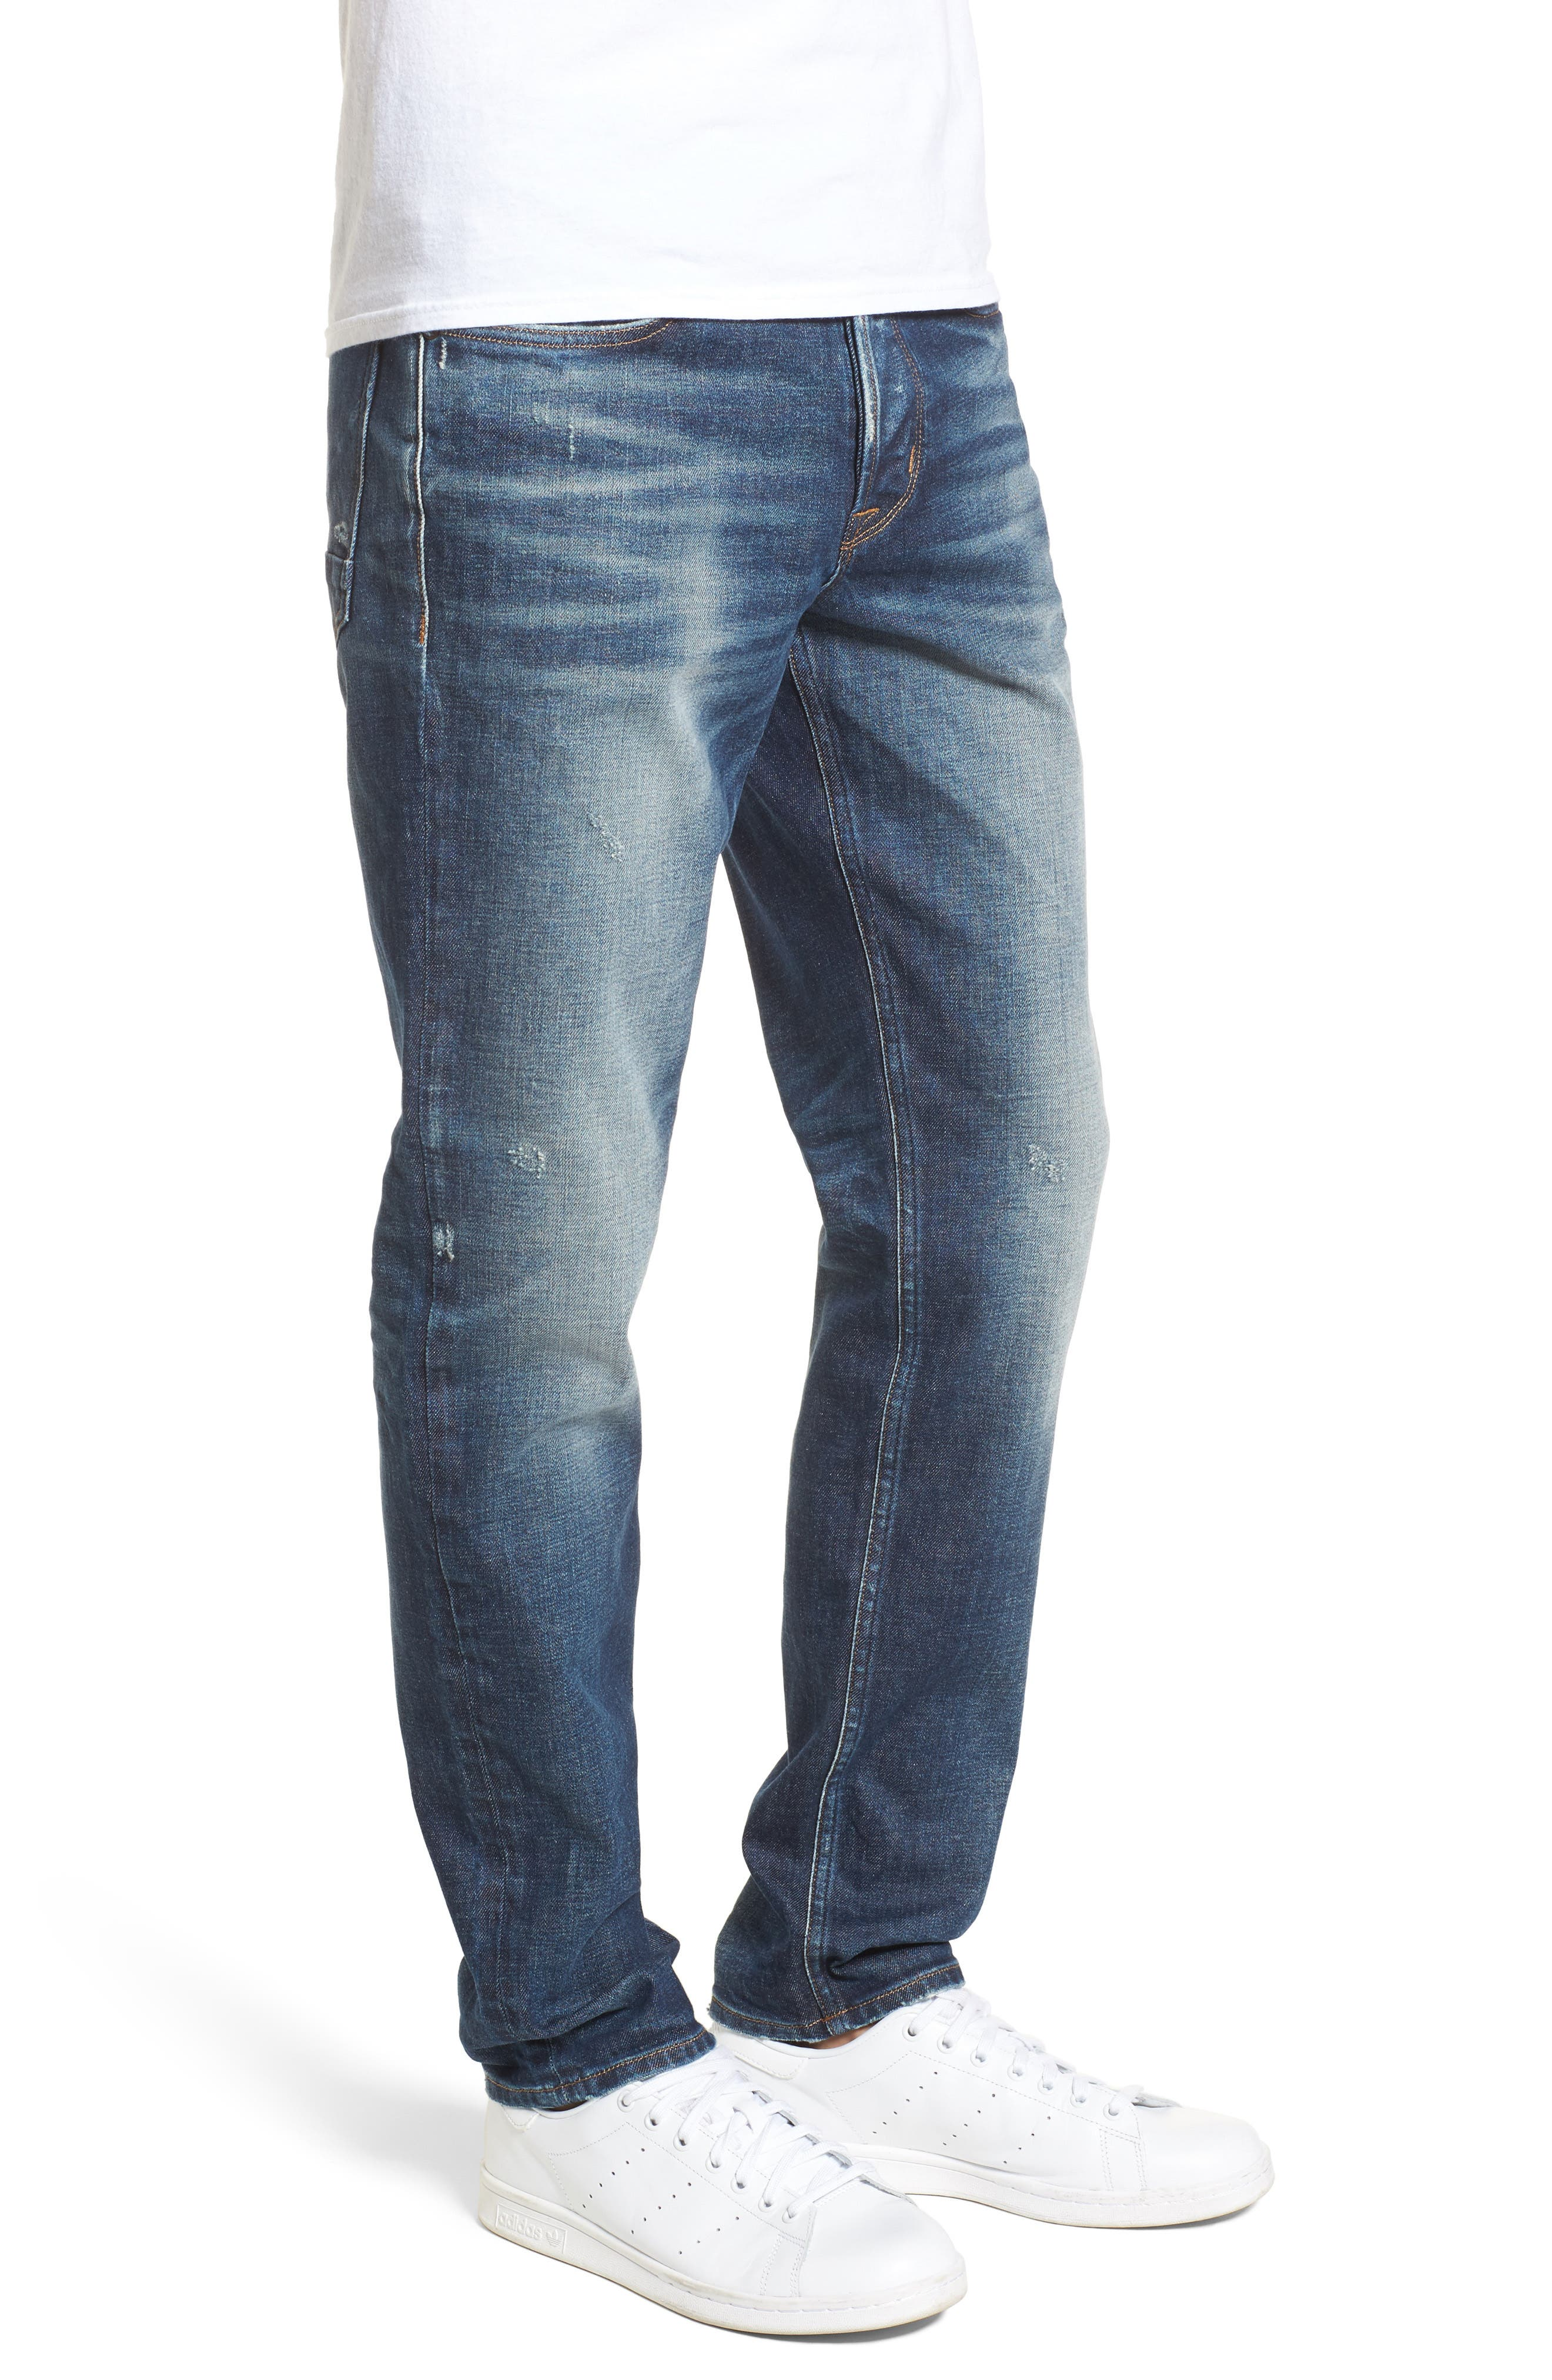 Sartor Slouchy Skinny Fit Jeans,                             Alternate thumbnail 3, color,                             427